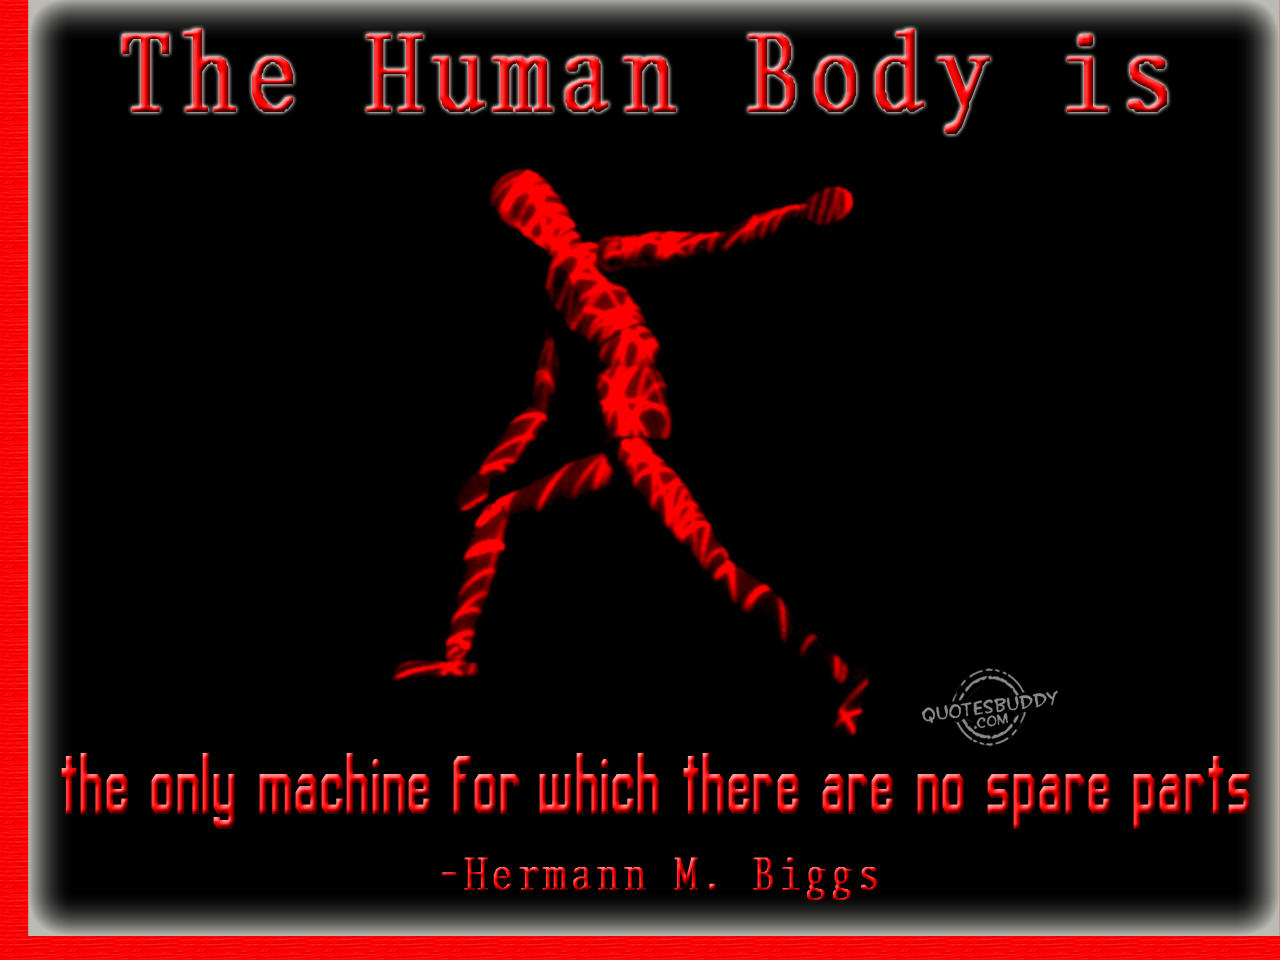 The Human Body Is The Only Machine For Which There Are No Spare Parts. - Hermann M. Biggs